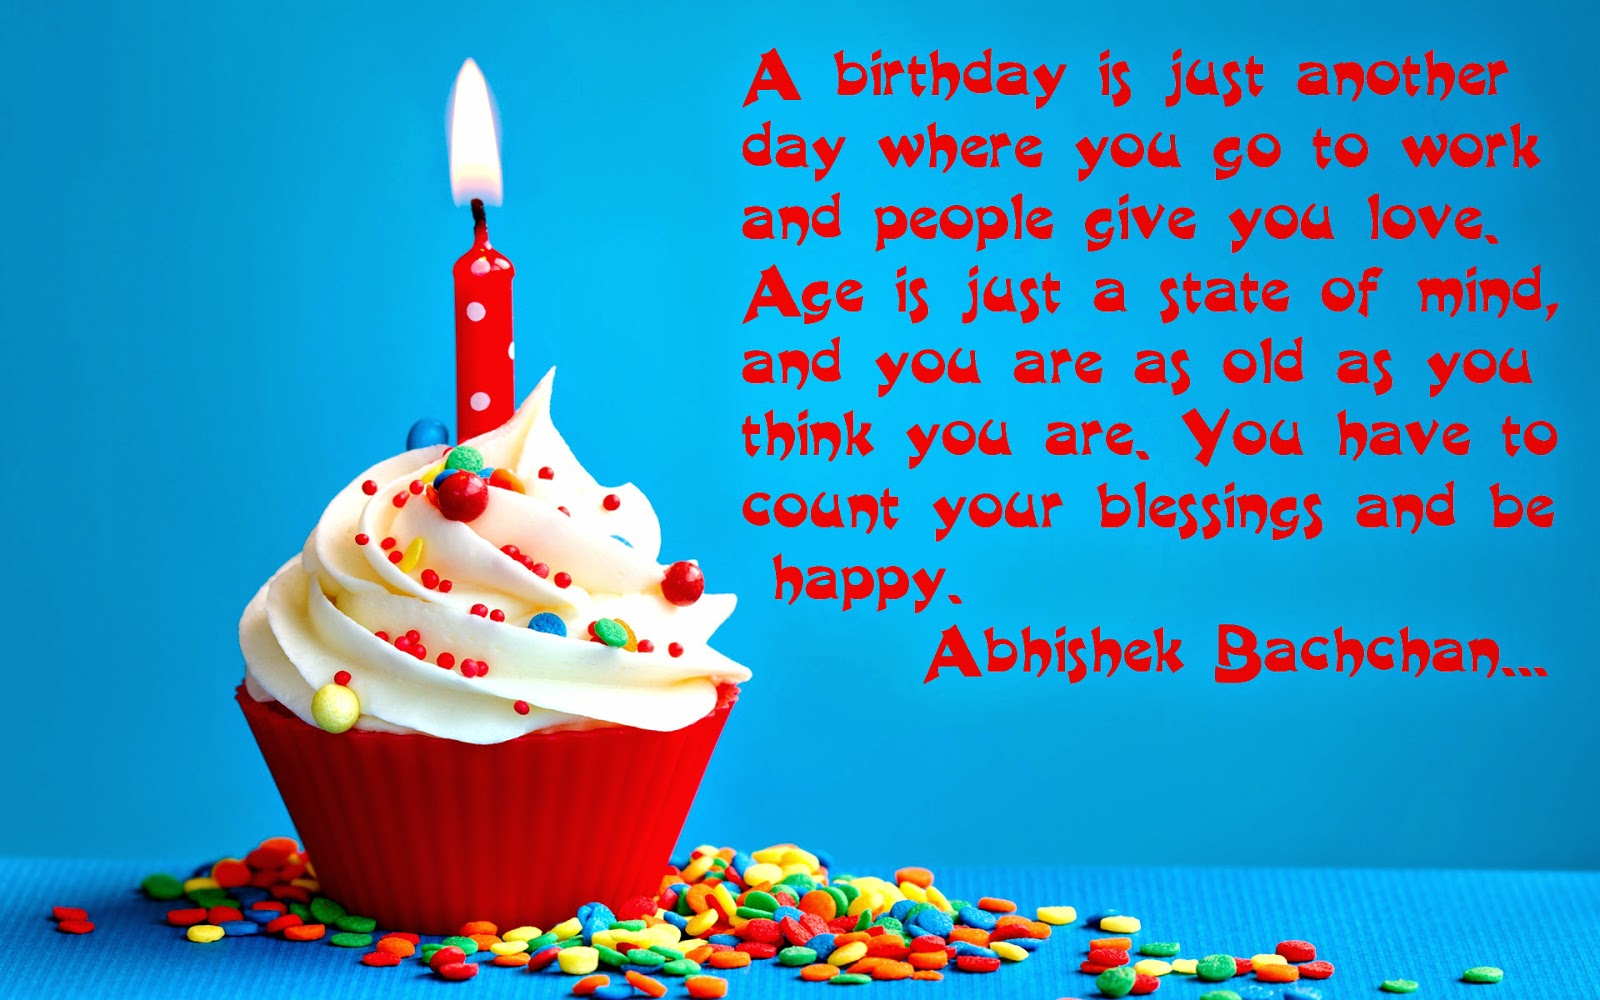 happy birthday english message ; happy-birthday-wishes-message-in-english-birthday-quotes-a-birthday-is-just-another-day-where-you-go